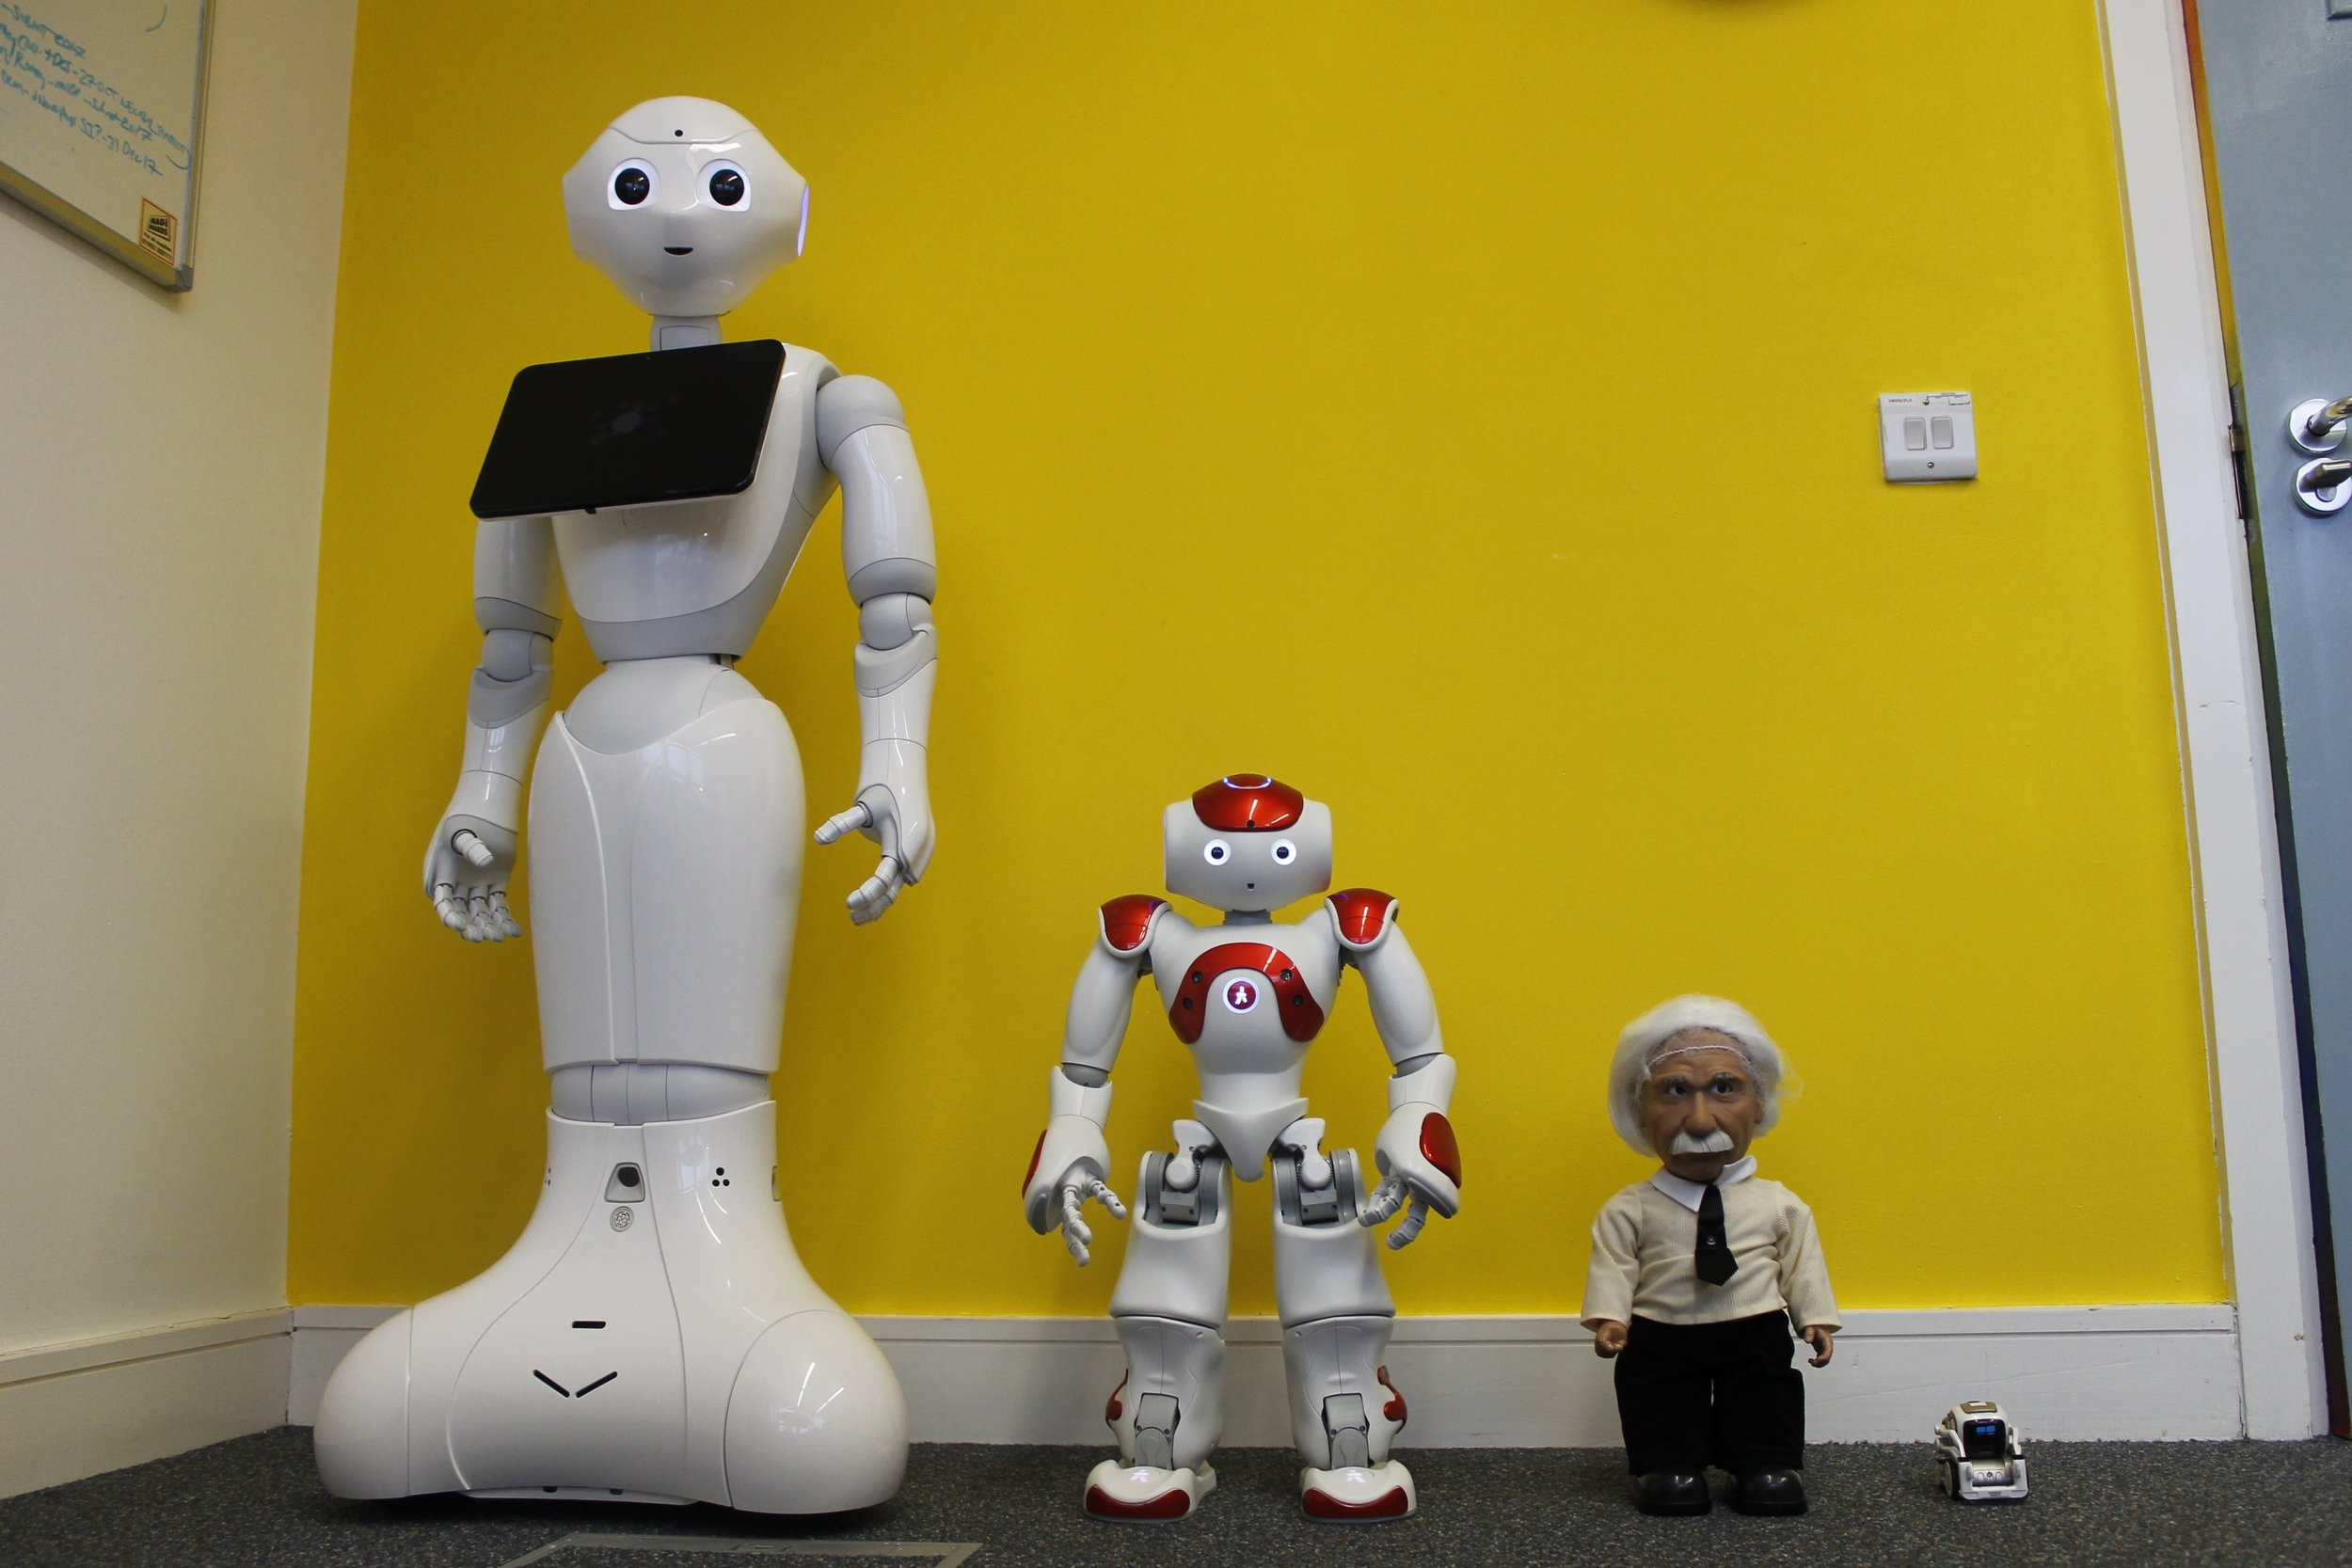 Say hello to the robotic members of the Social Robots team! - From tiny to child-sized, our robotic team members are helping us understand how people people's perceptions of robots change over time, one human-robot interaction at a time!